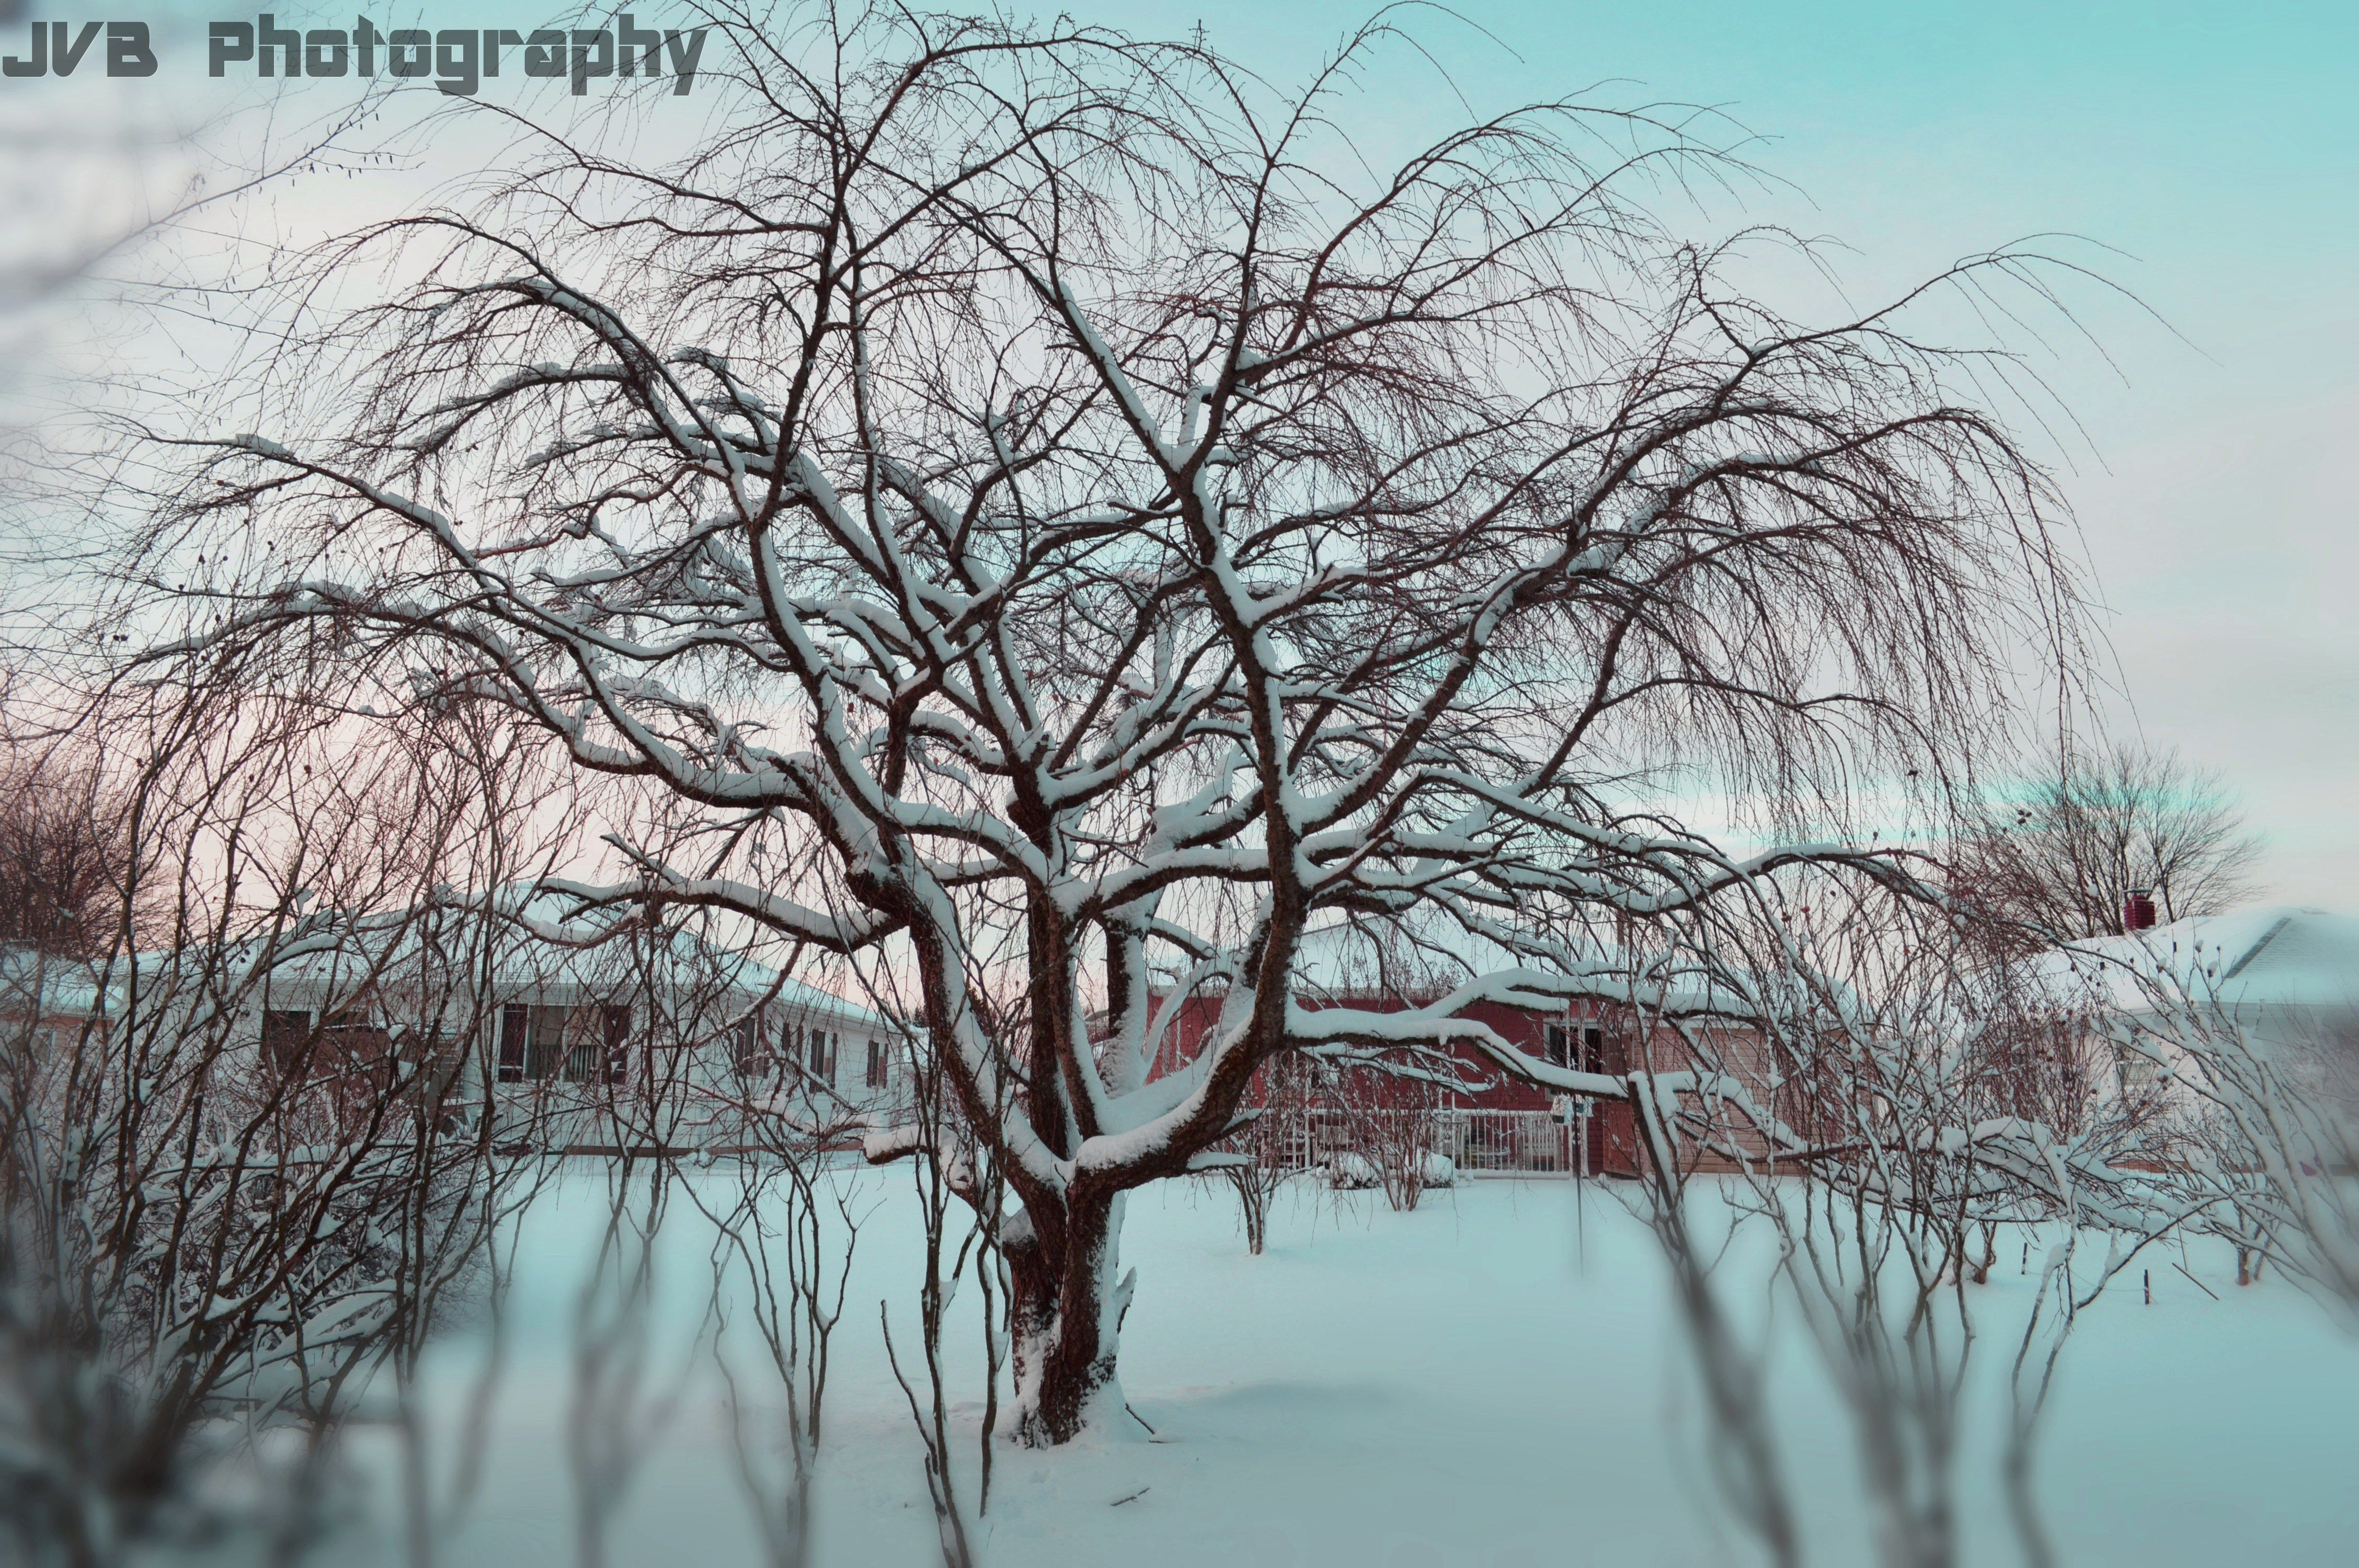 Winter Cherry Blossom Tree | JVB Photography | Pinterest Pictures Trees In Winter Pinterest